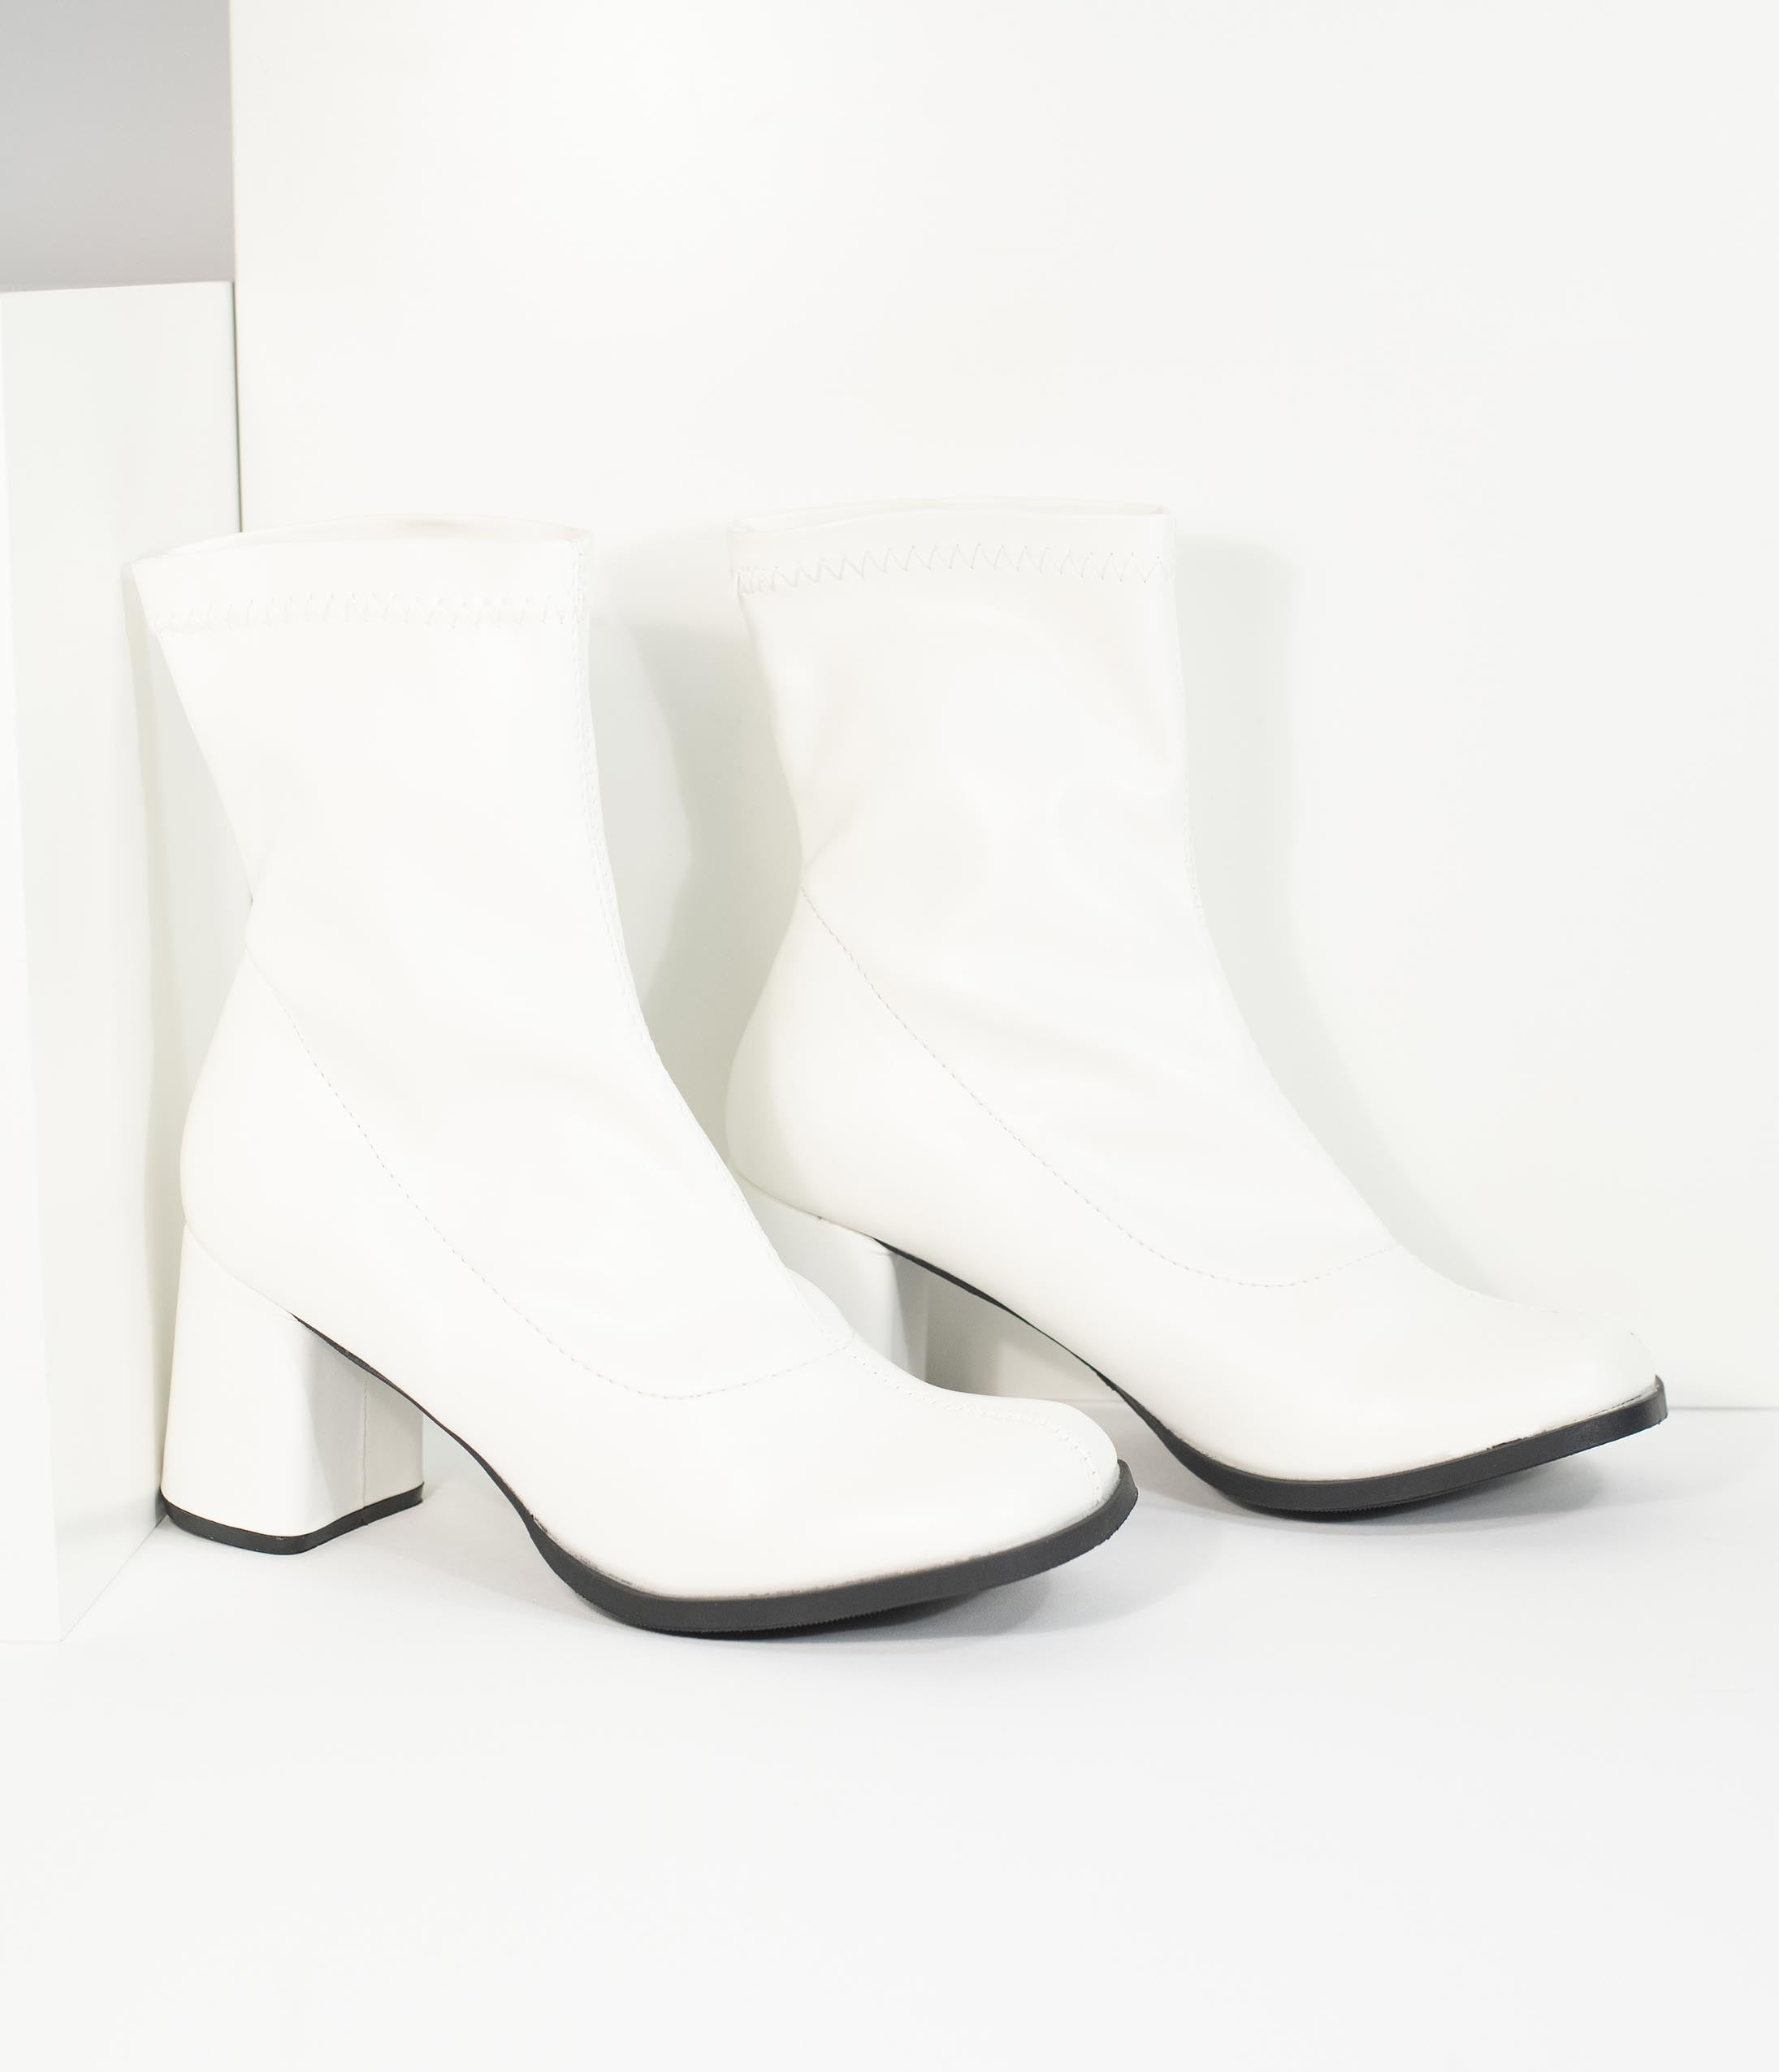 70s Disco Fashion: Disco Clothes, Outfits for Girls Retro Style White Matte Leatherette Ankle Go Go Boots $54.00 AT vintagedancer.com